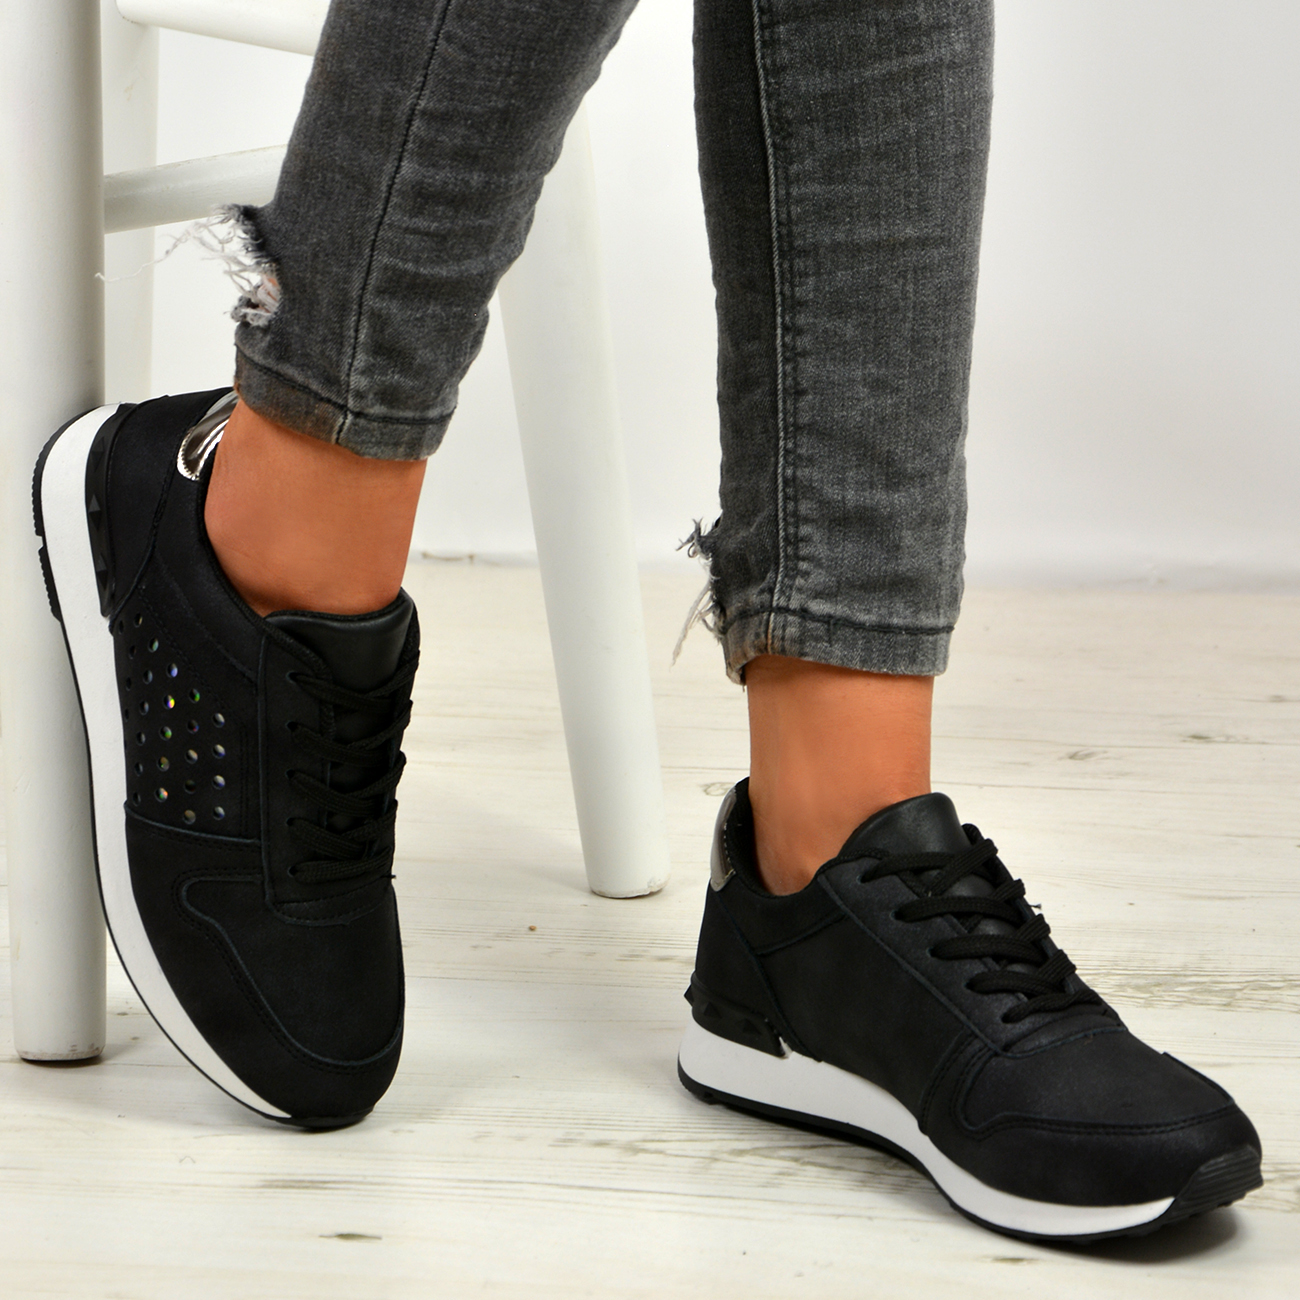 New-Womens-Lace-Up-Trainers-Ladies-Sneakers-Plimsoll-Running-Shoes-Size-Uk-3-8